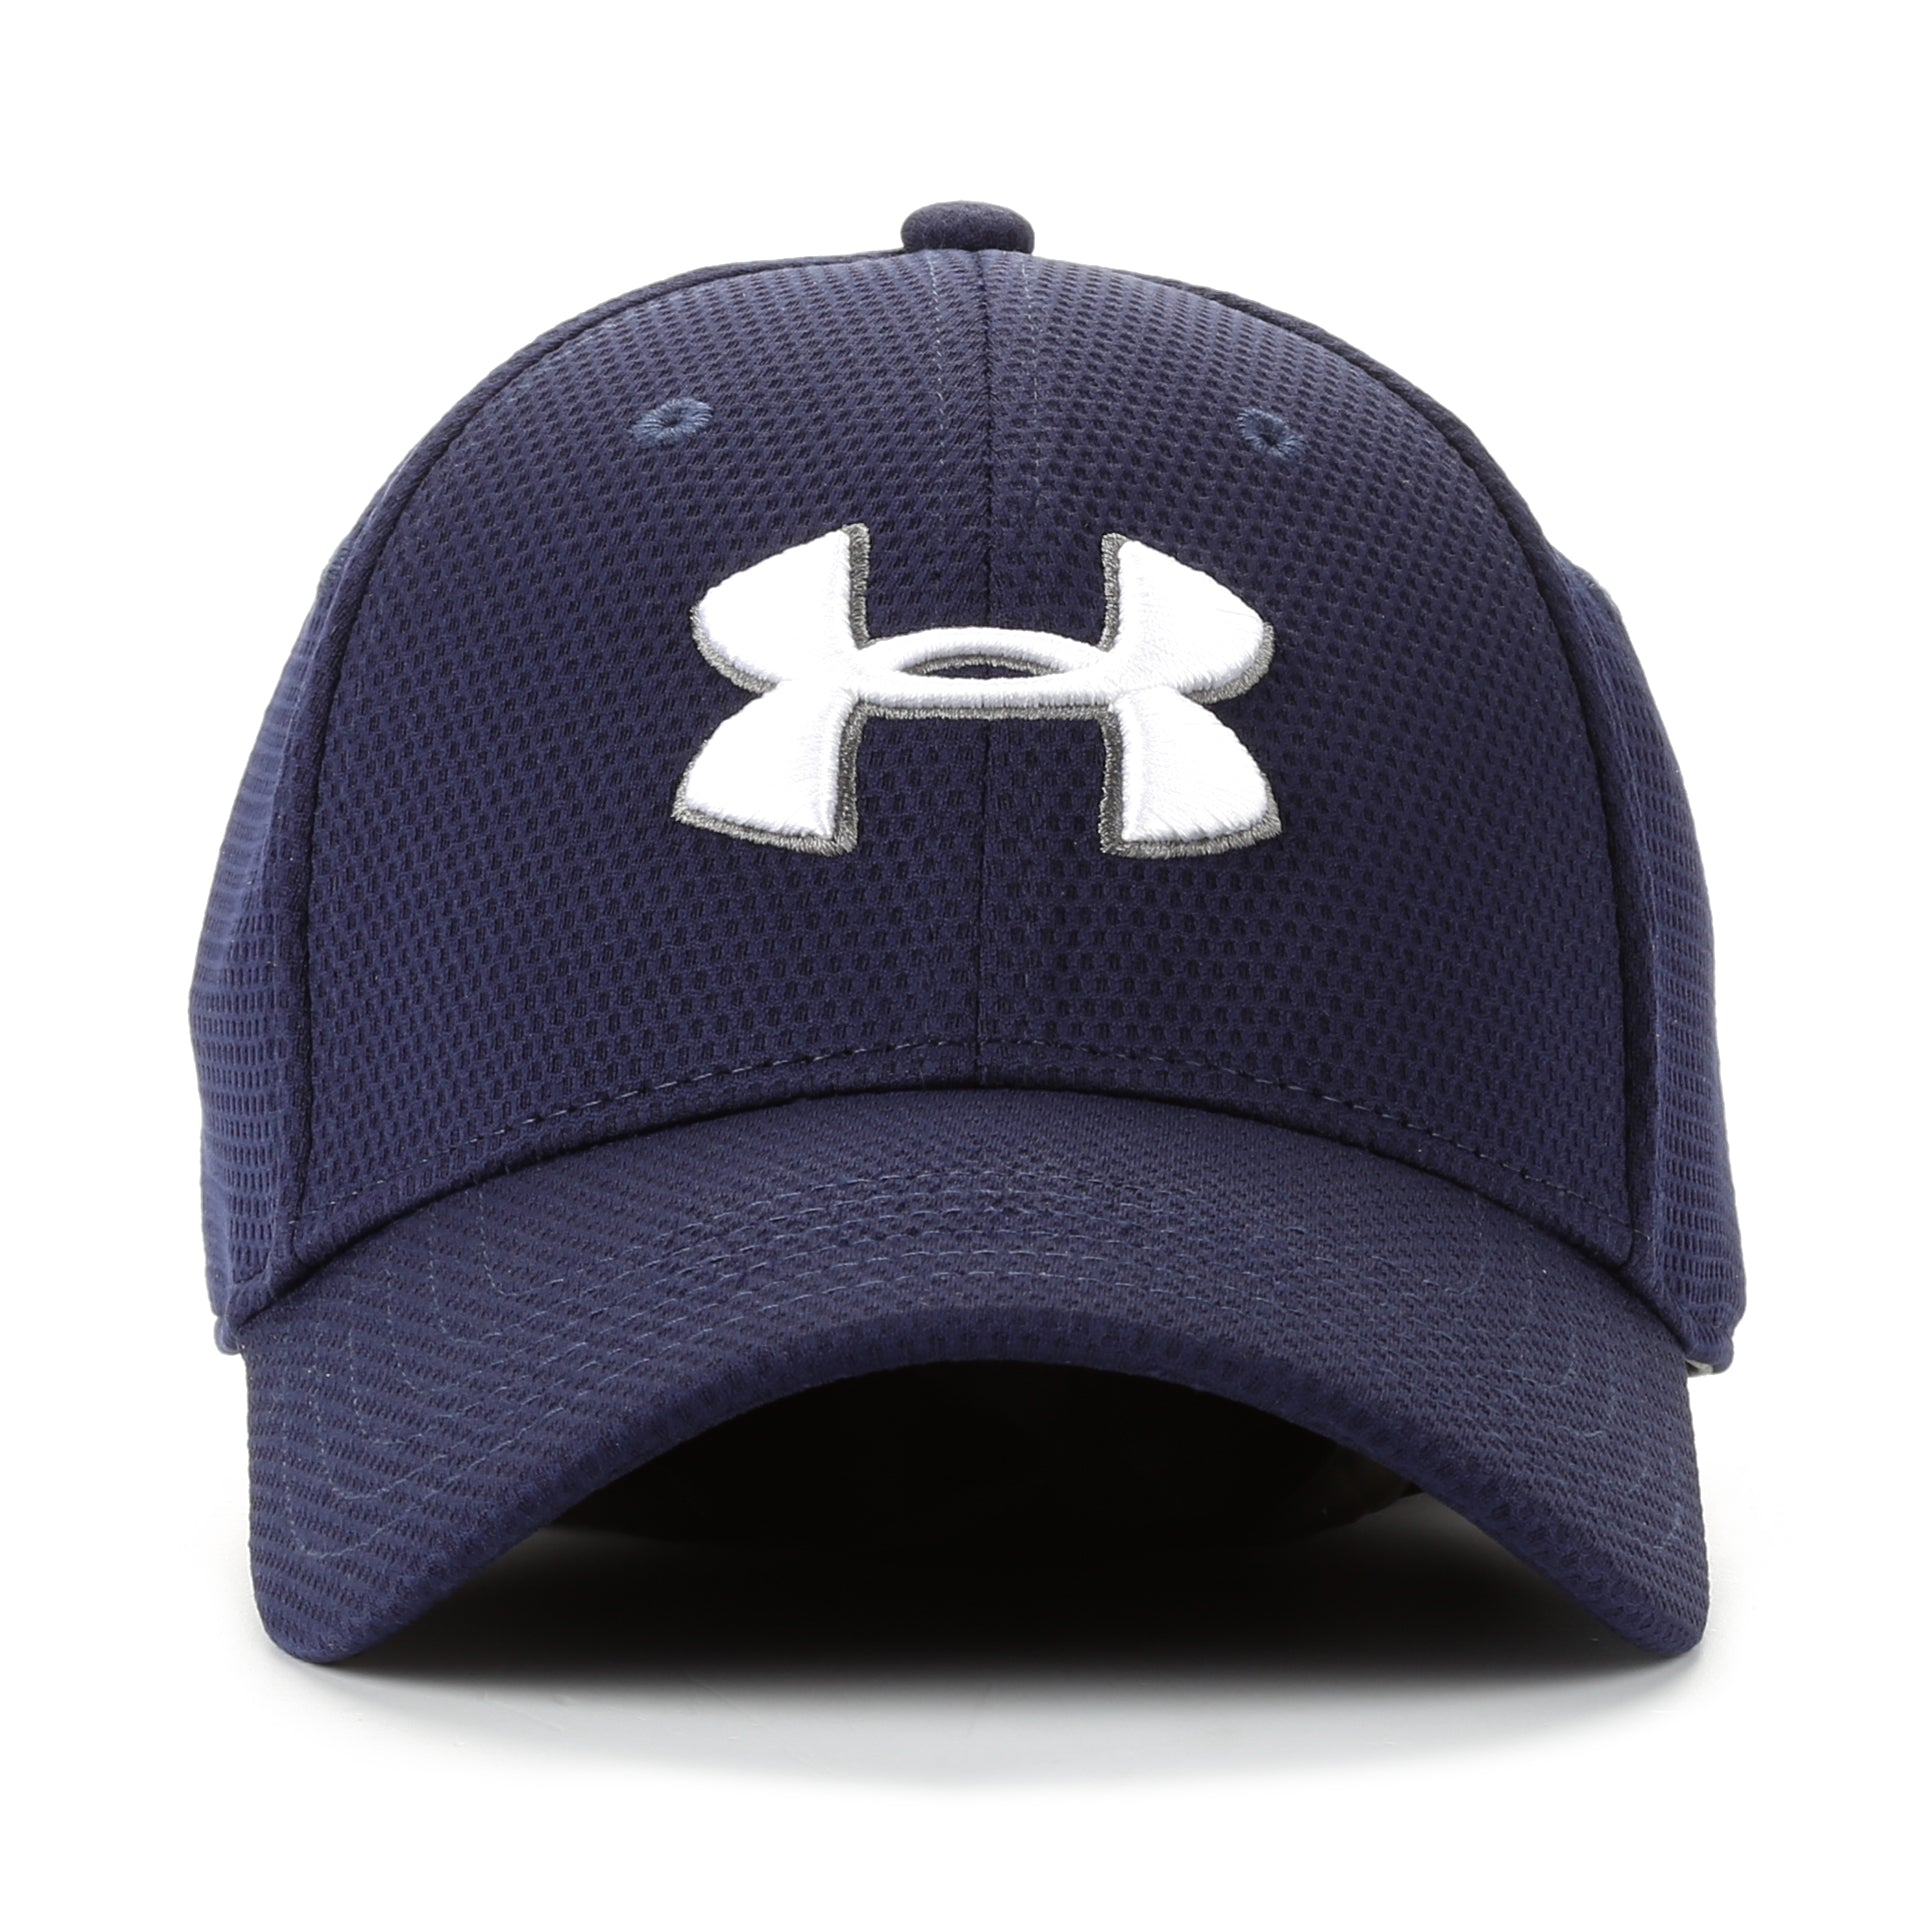 Under Armour Blitzing II Stretch Fit Hat - Navy White - New Star a49dfbe6590